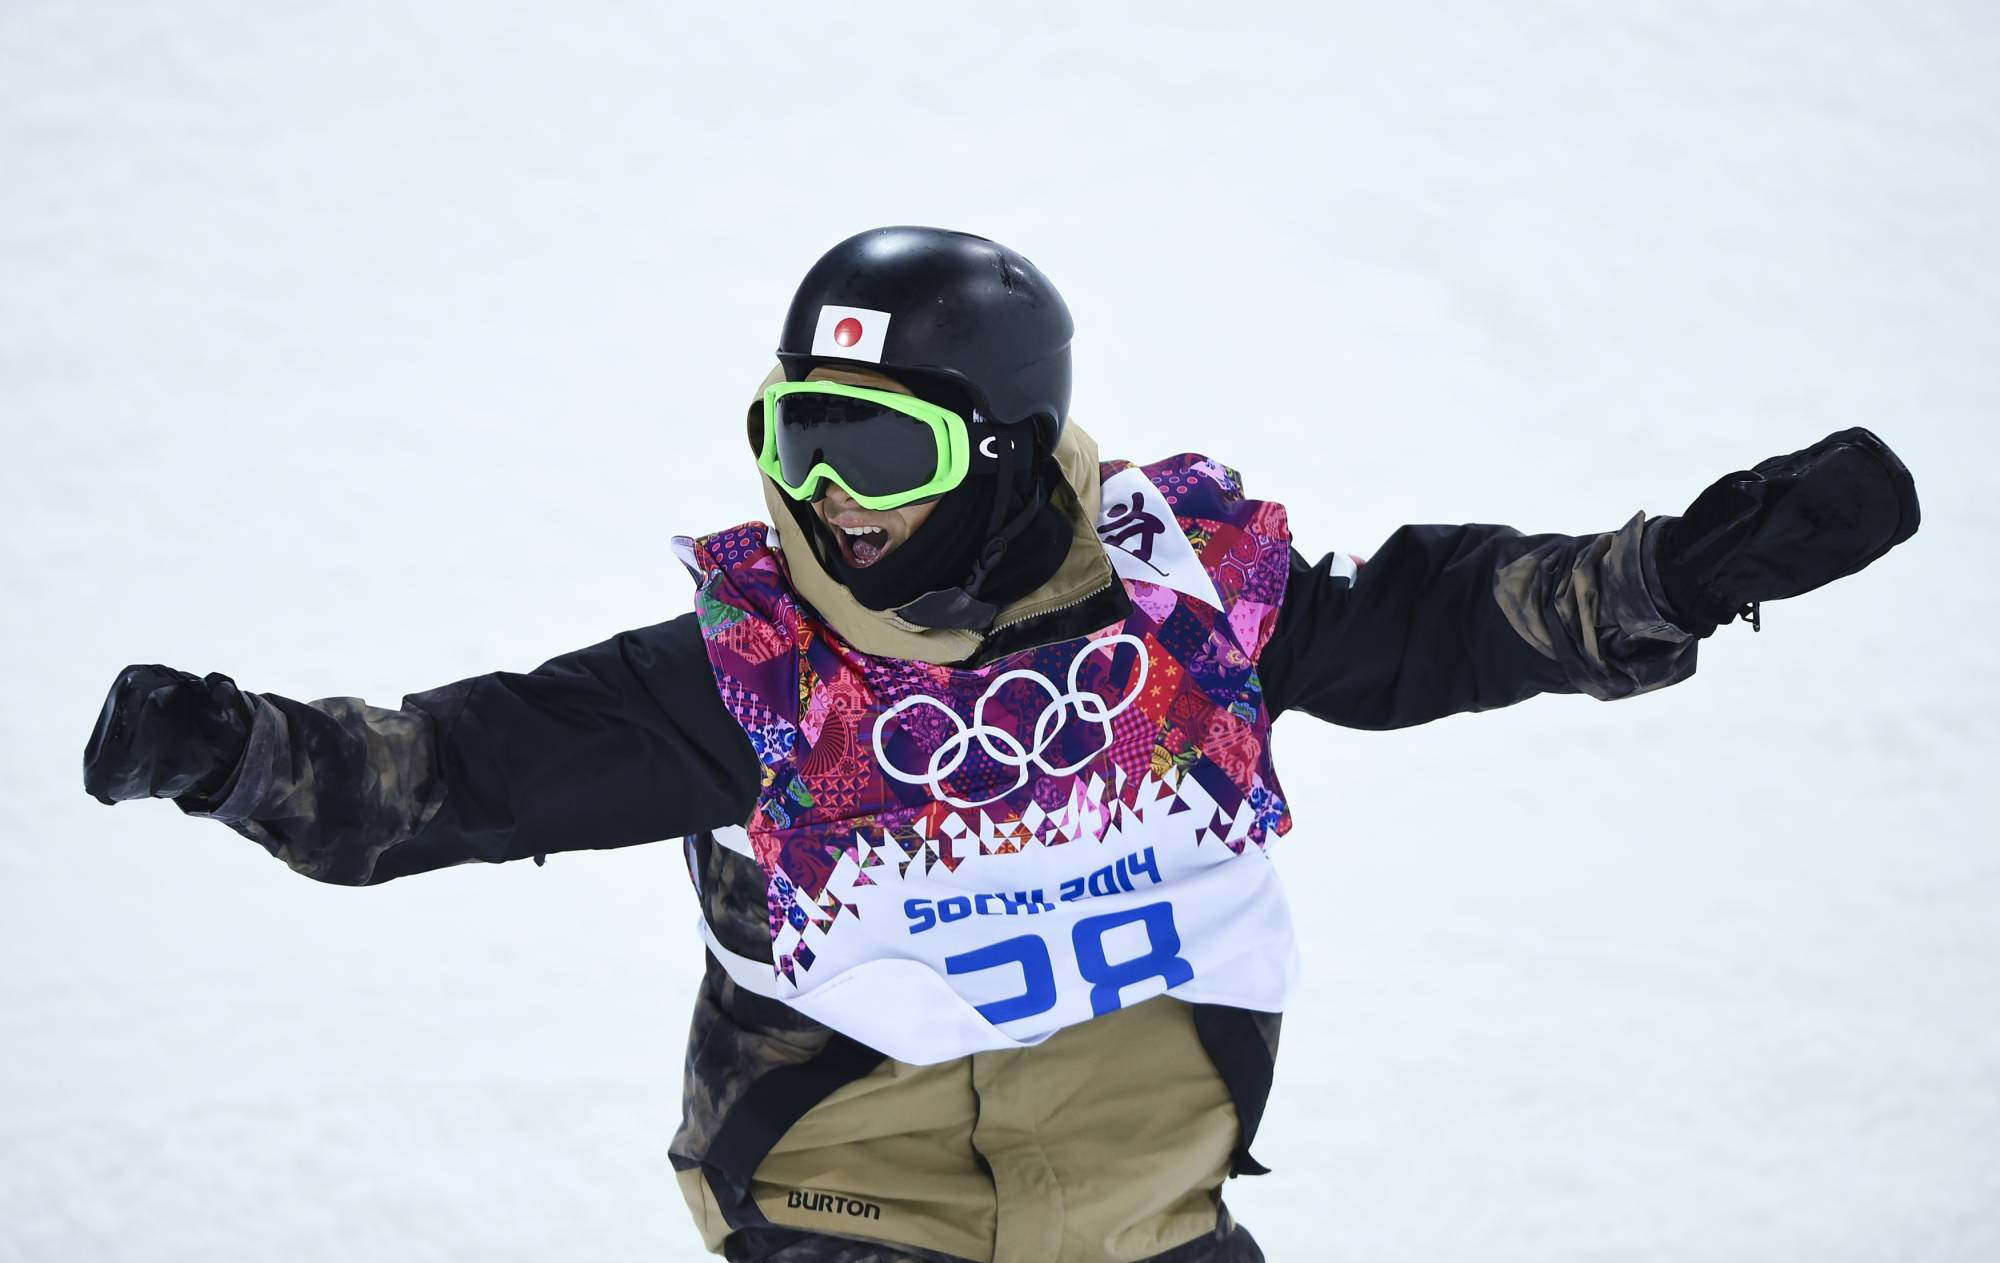 Taku Hiraoka competes during the men's snowboard halfpipe final at the 2014 Sochi Olympics . | REUTERS